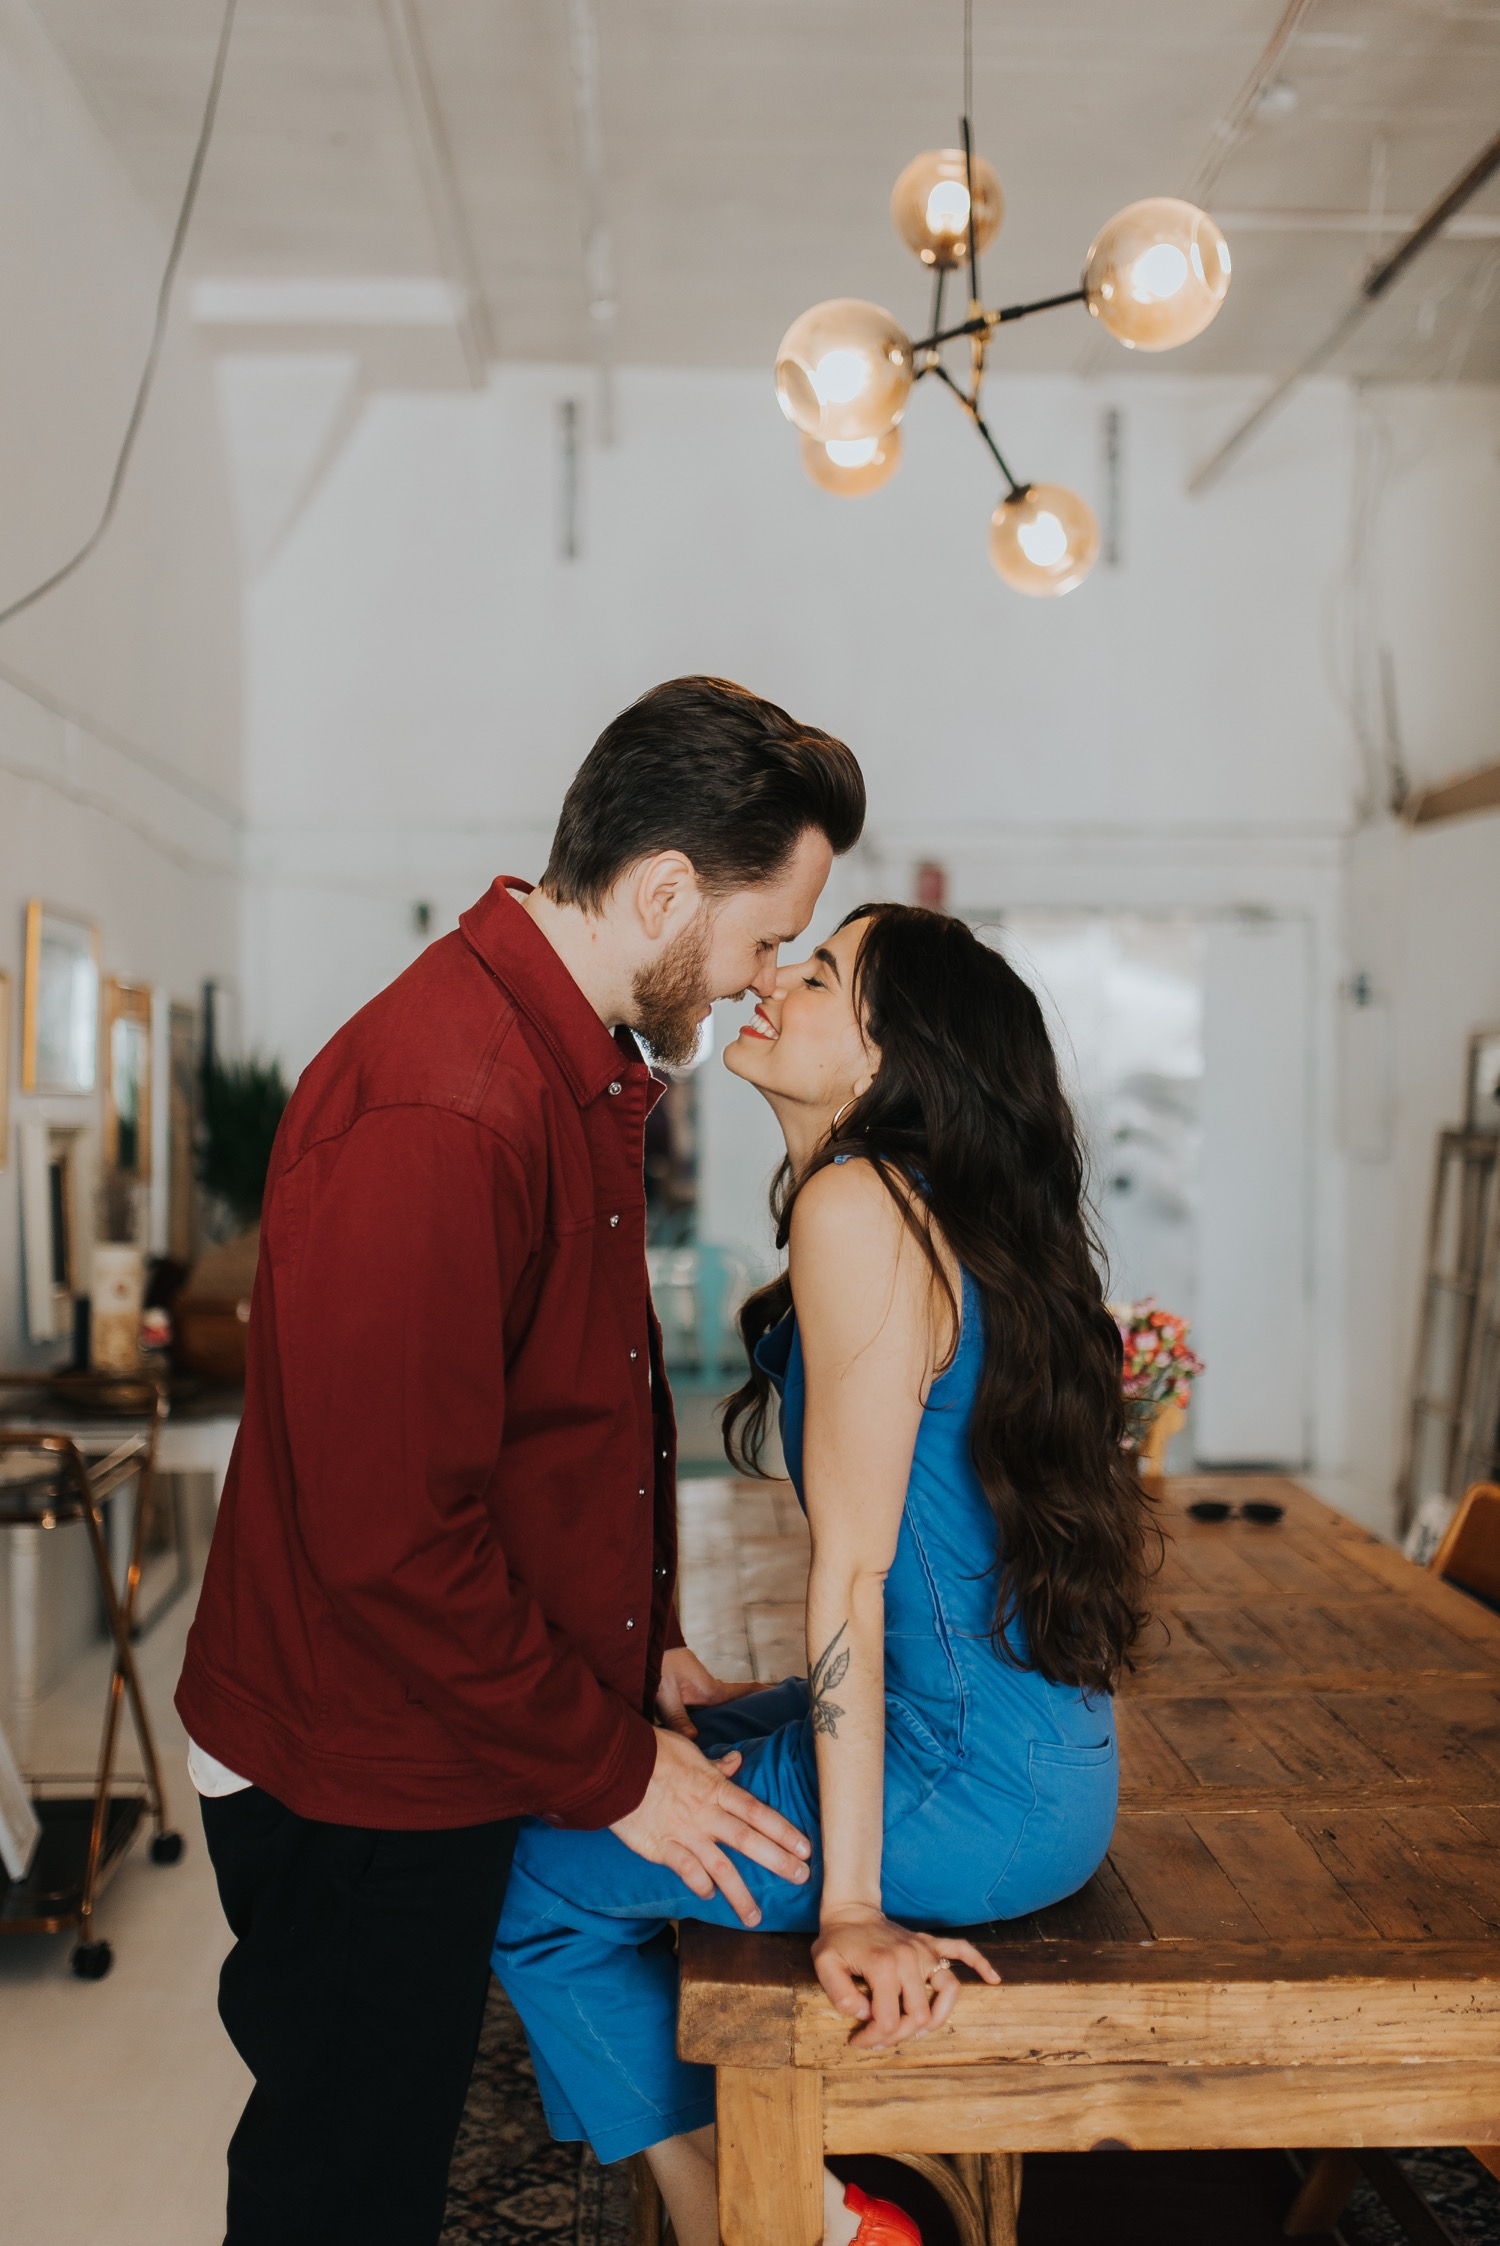 Lovt-Loft-Studio-Toronto-Engagement-Couple-Shoot-Session-Non-Traditional-Industrial-Brooklynn-Leitch-Photography (1).jpg